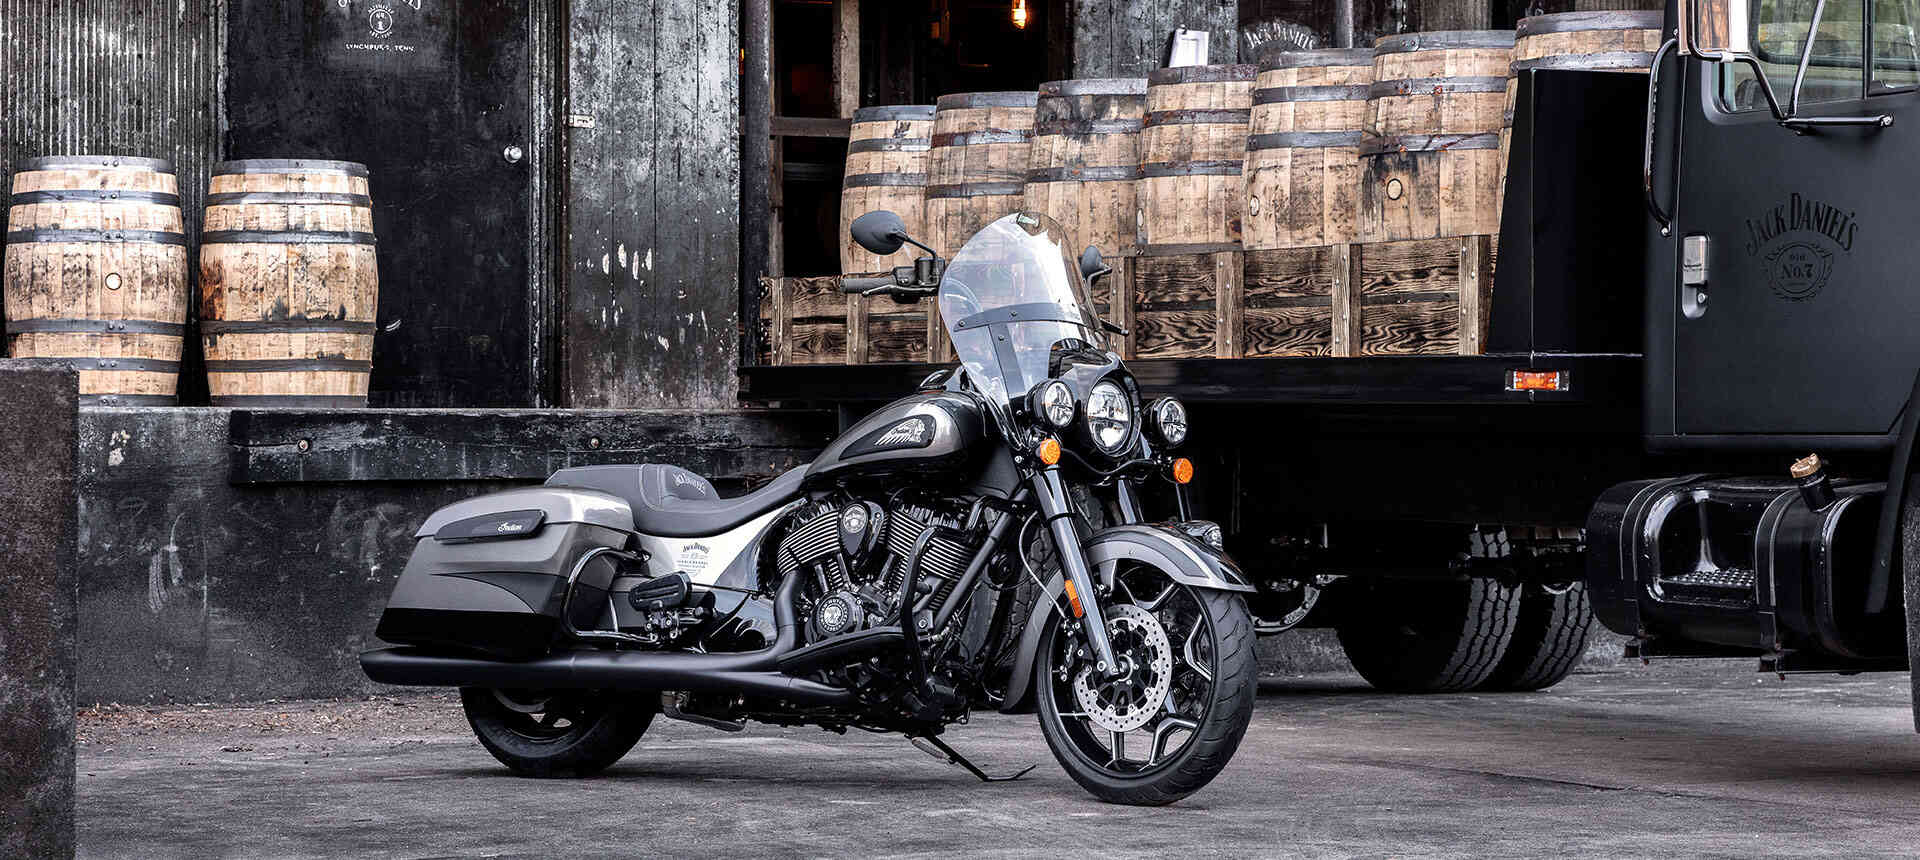 2019 Jack Daniel's Limited Edition Indian Springfield Dark Horse